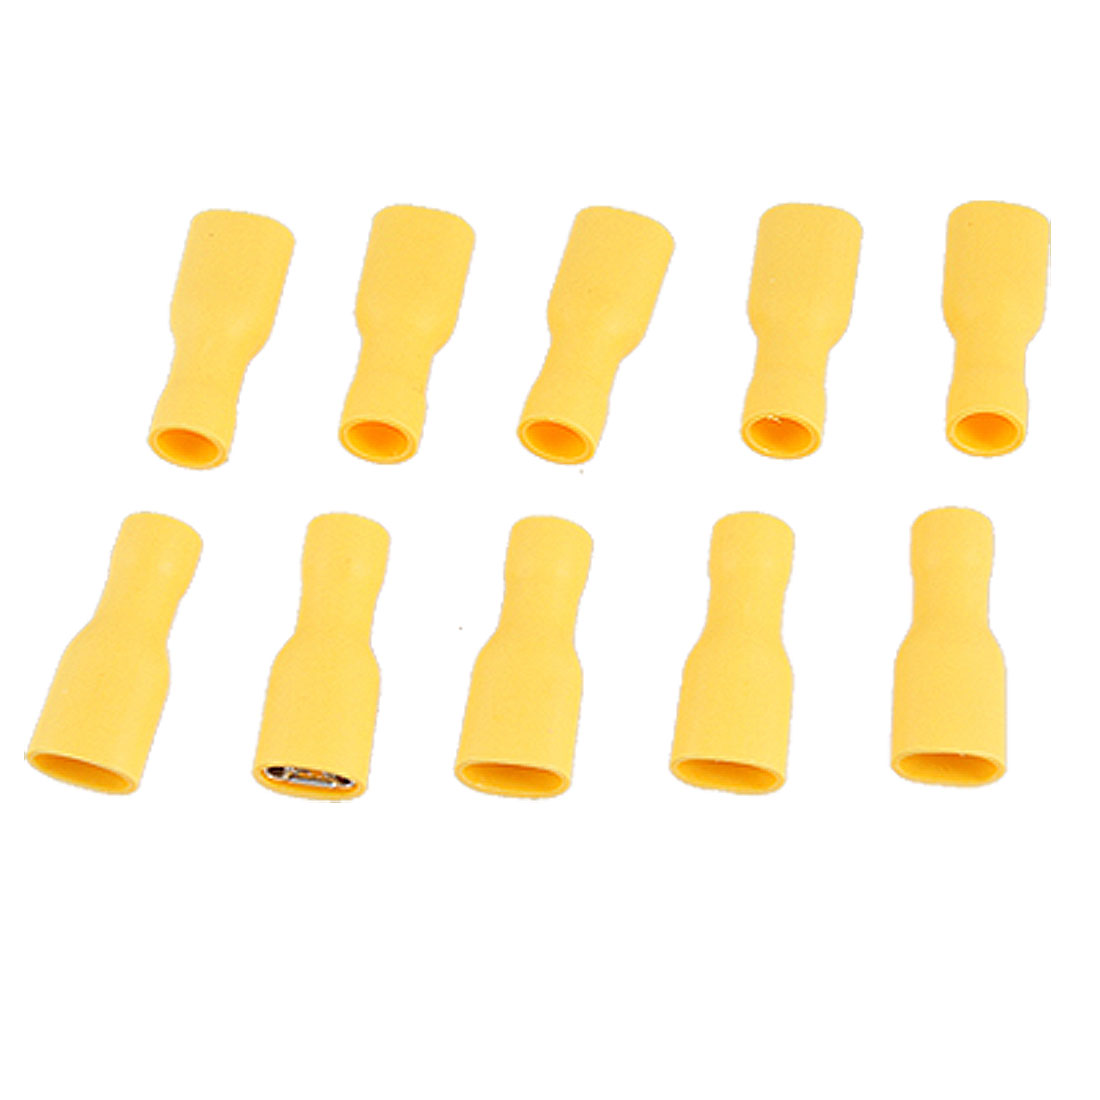 10 Pcs Yellow Plastic Fully Insulated Female Spade Crimp Connectors FDFD 5-250